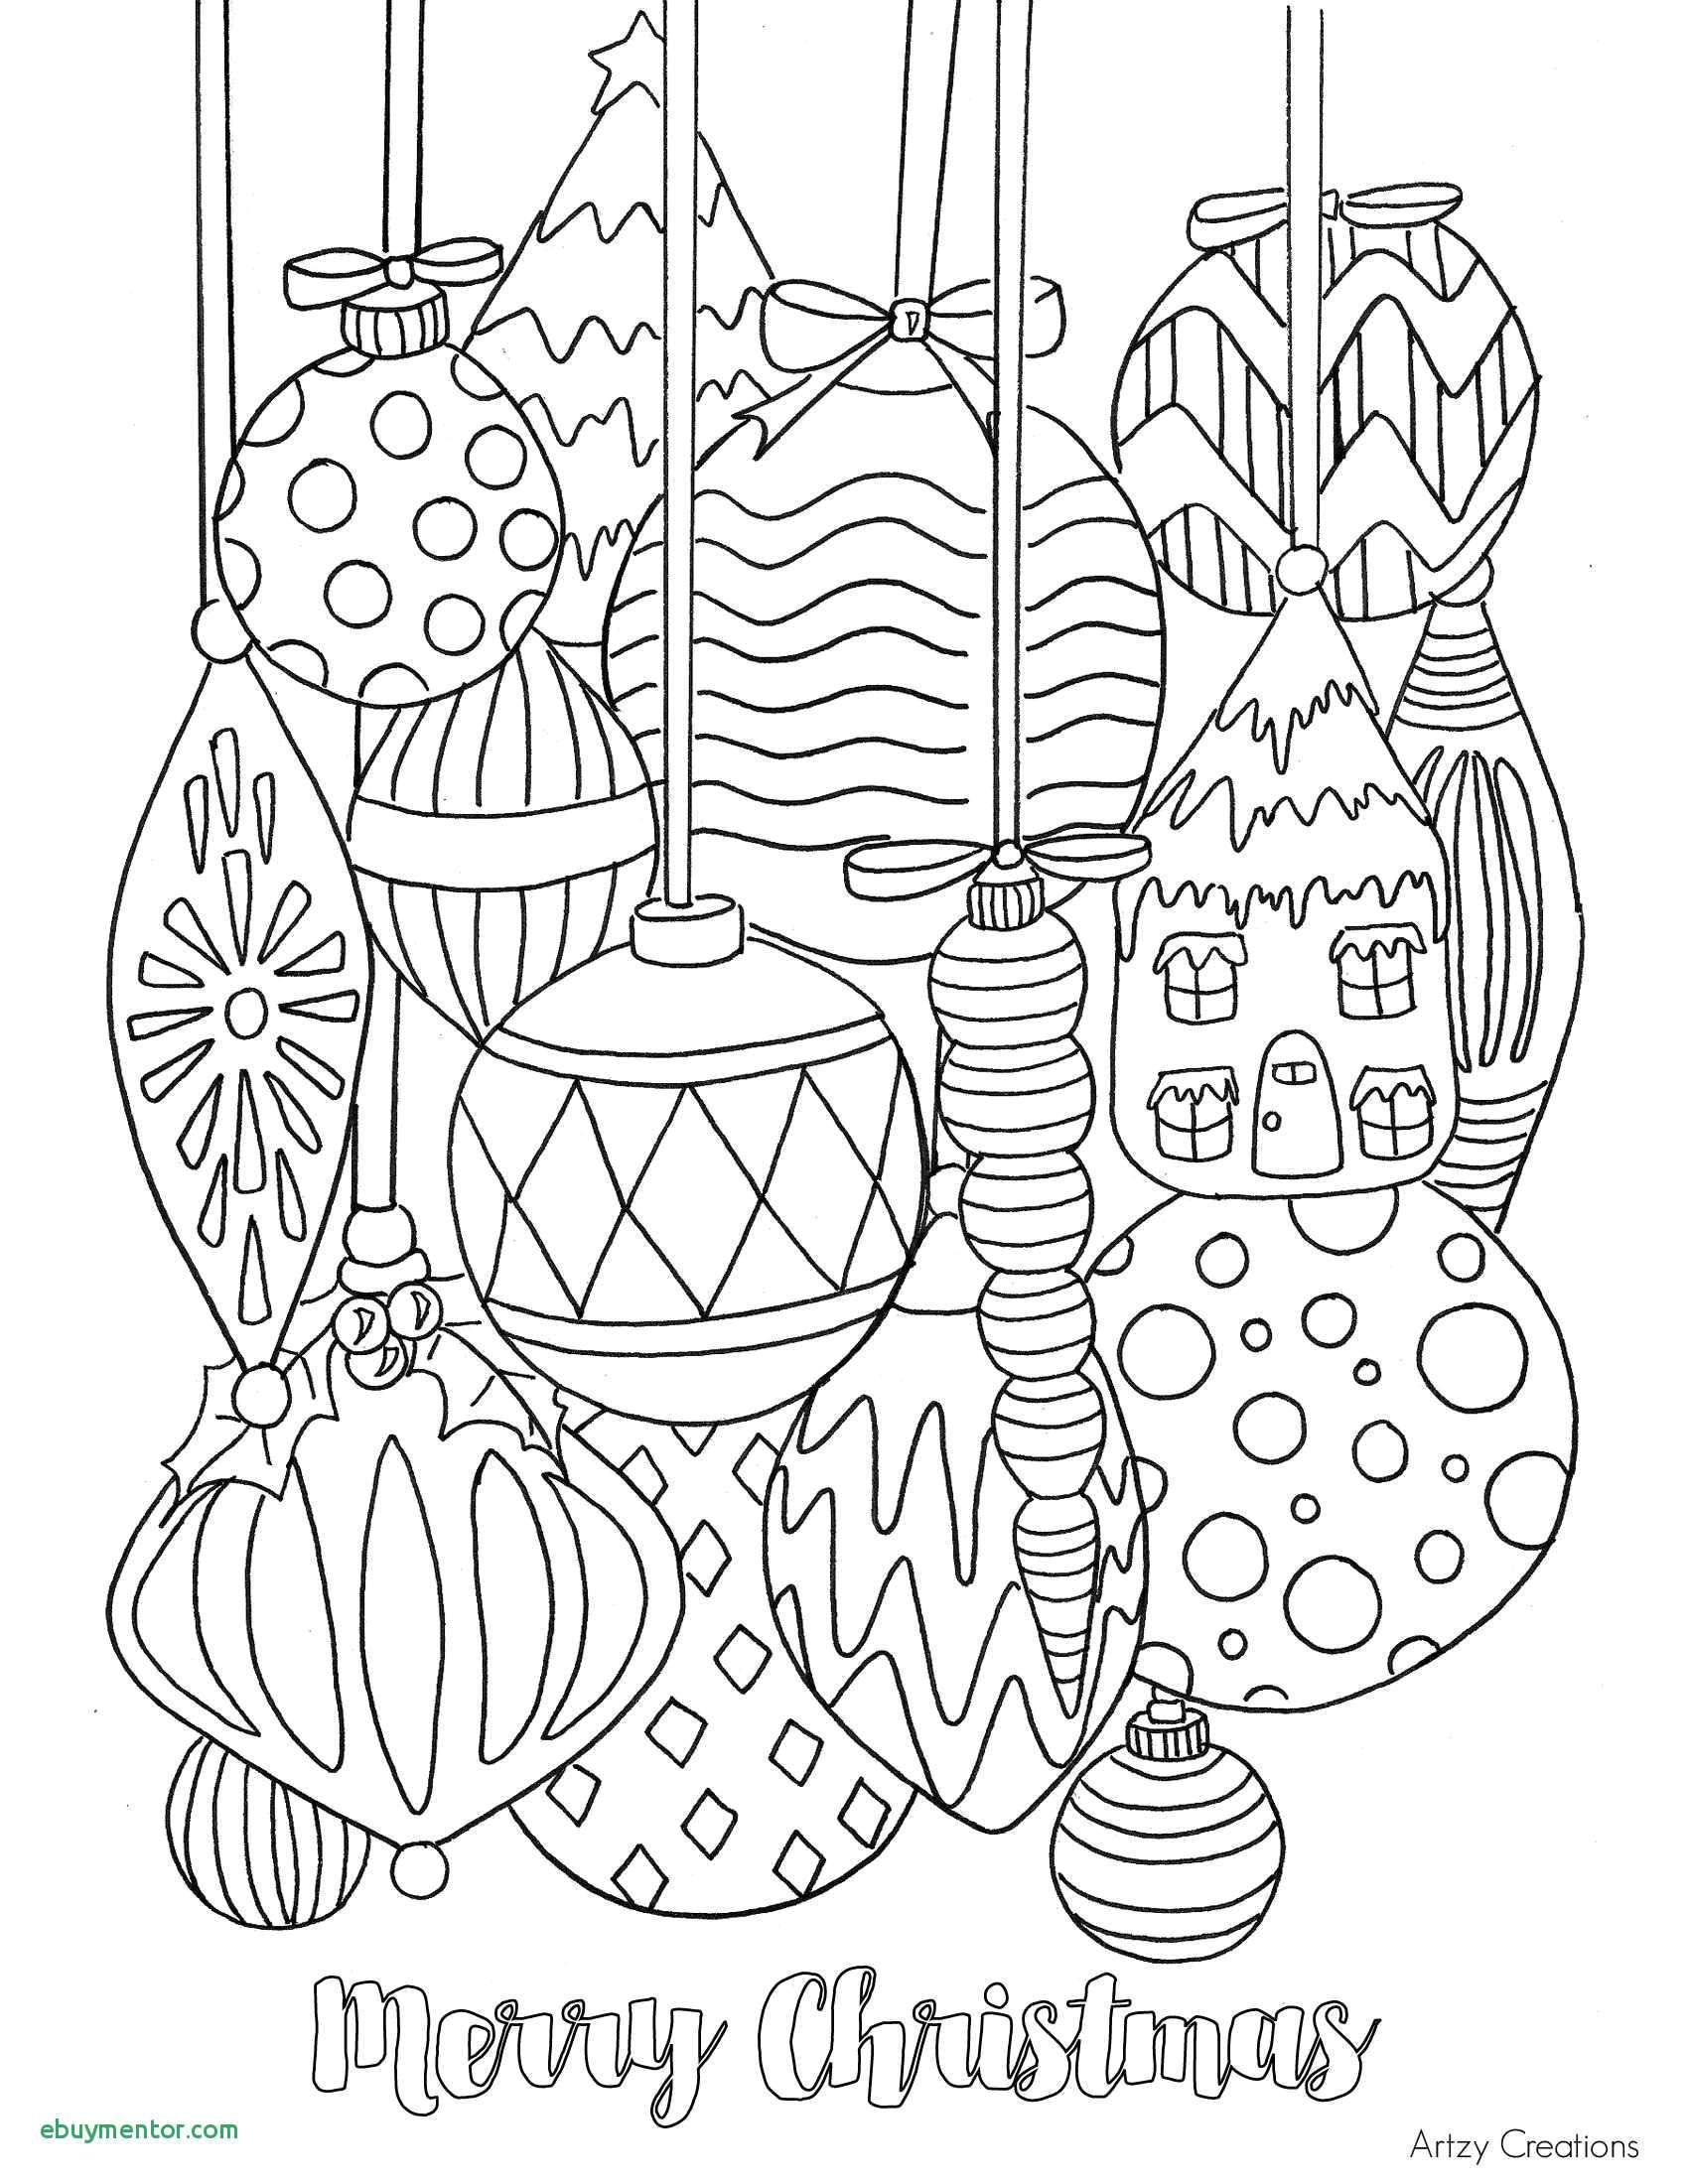 Vampire Christmas Coloring Pages With Up House Page Awesome Crayola Free